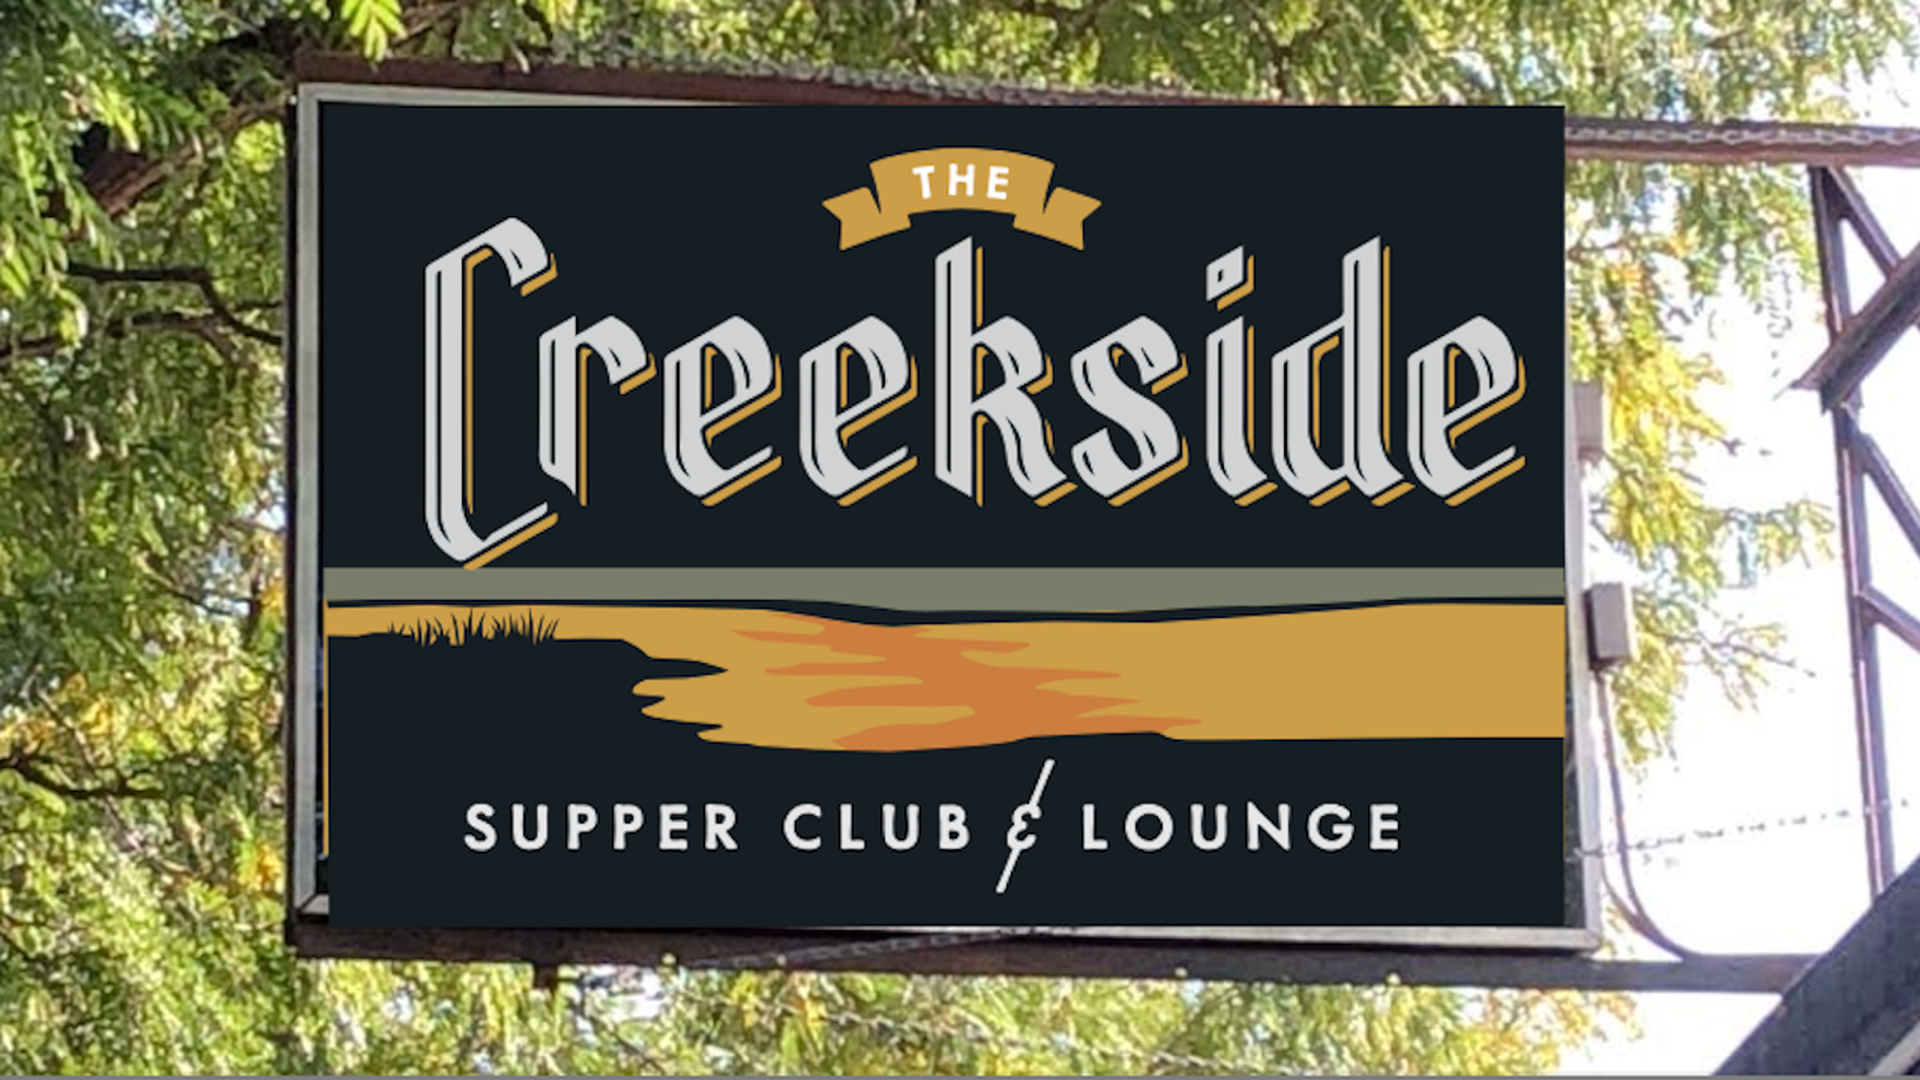 A sign with Creekside Supper Club in white letters above orange